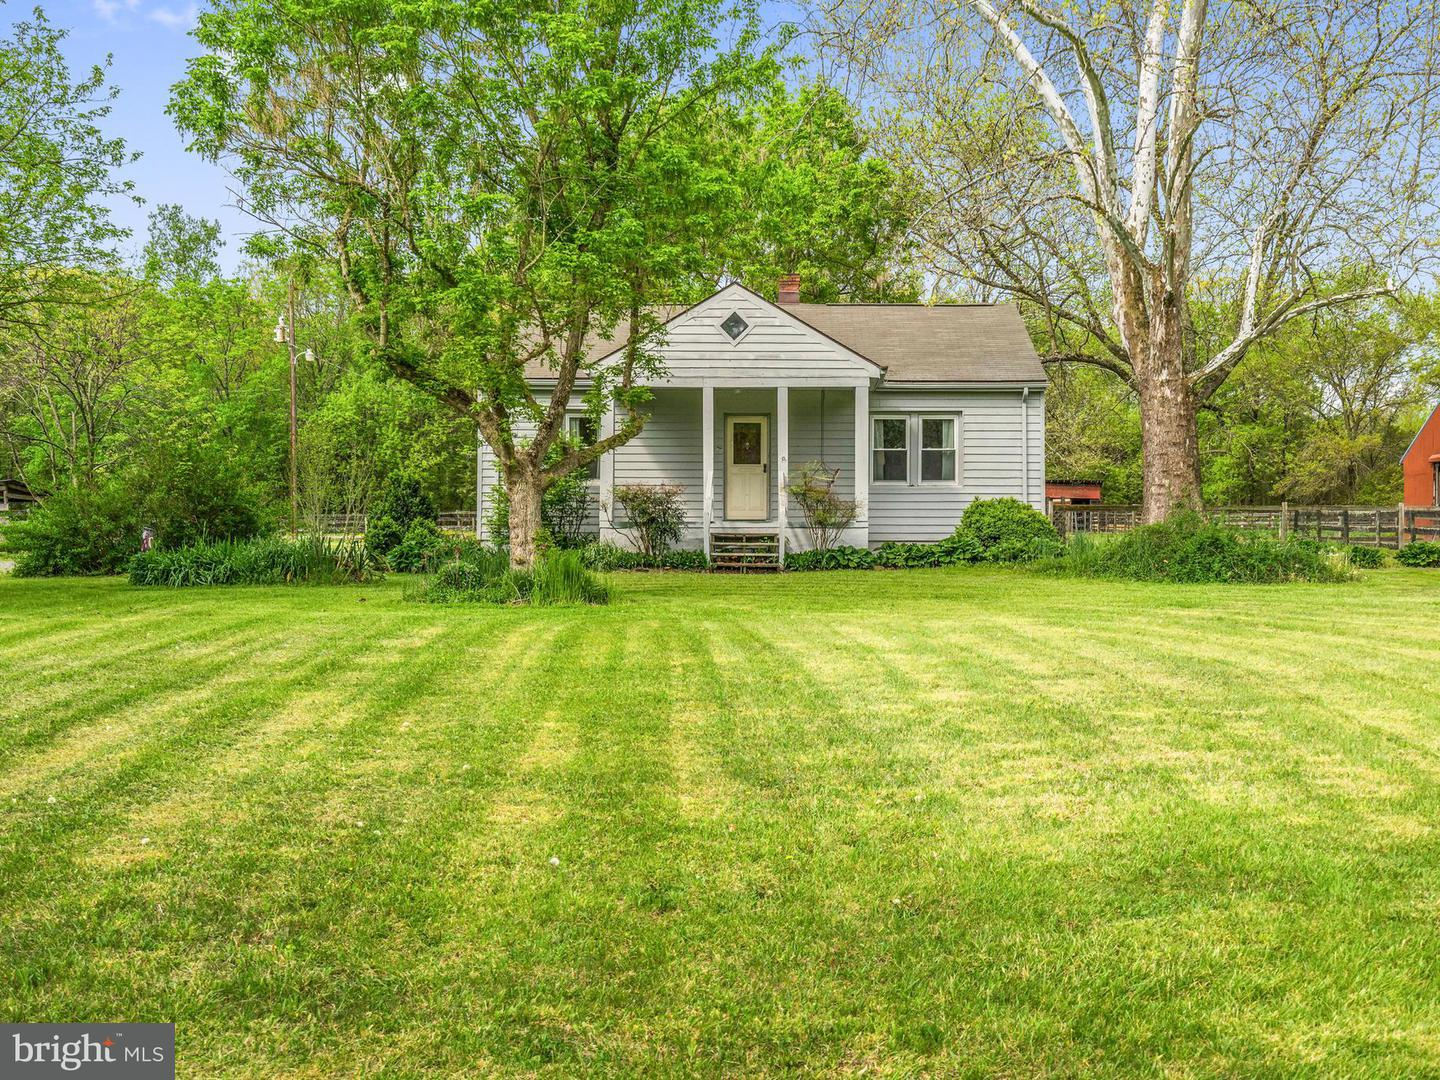 Farm for Sale at 24258 Somerville Rd Mitchells, Virginia 22729 United States